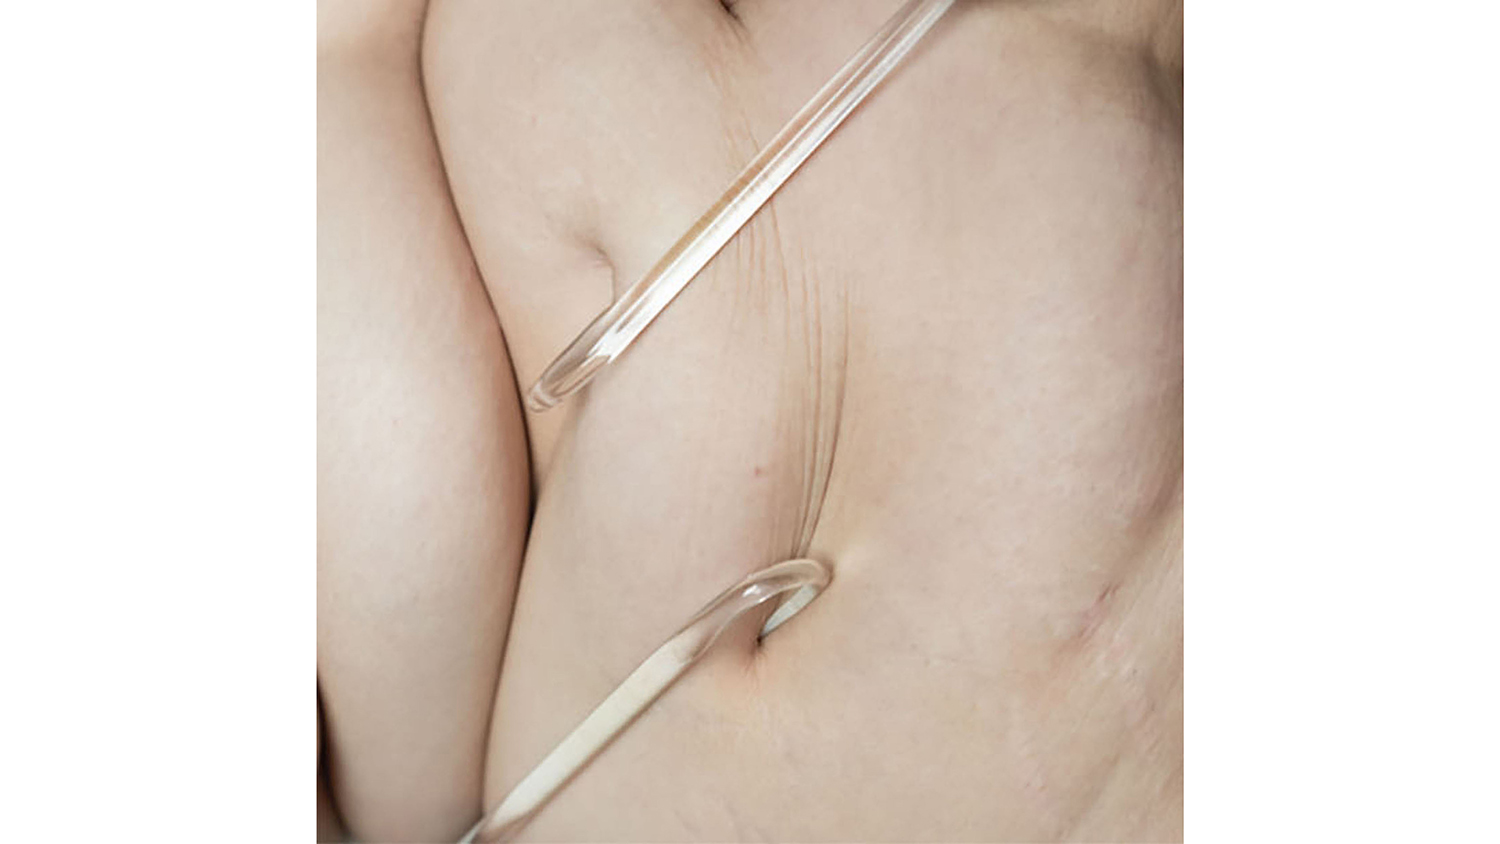 Glass hooks pull on flesh to demonstrate the material's fragility.